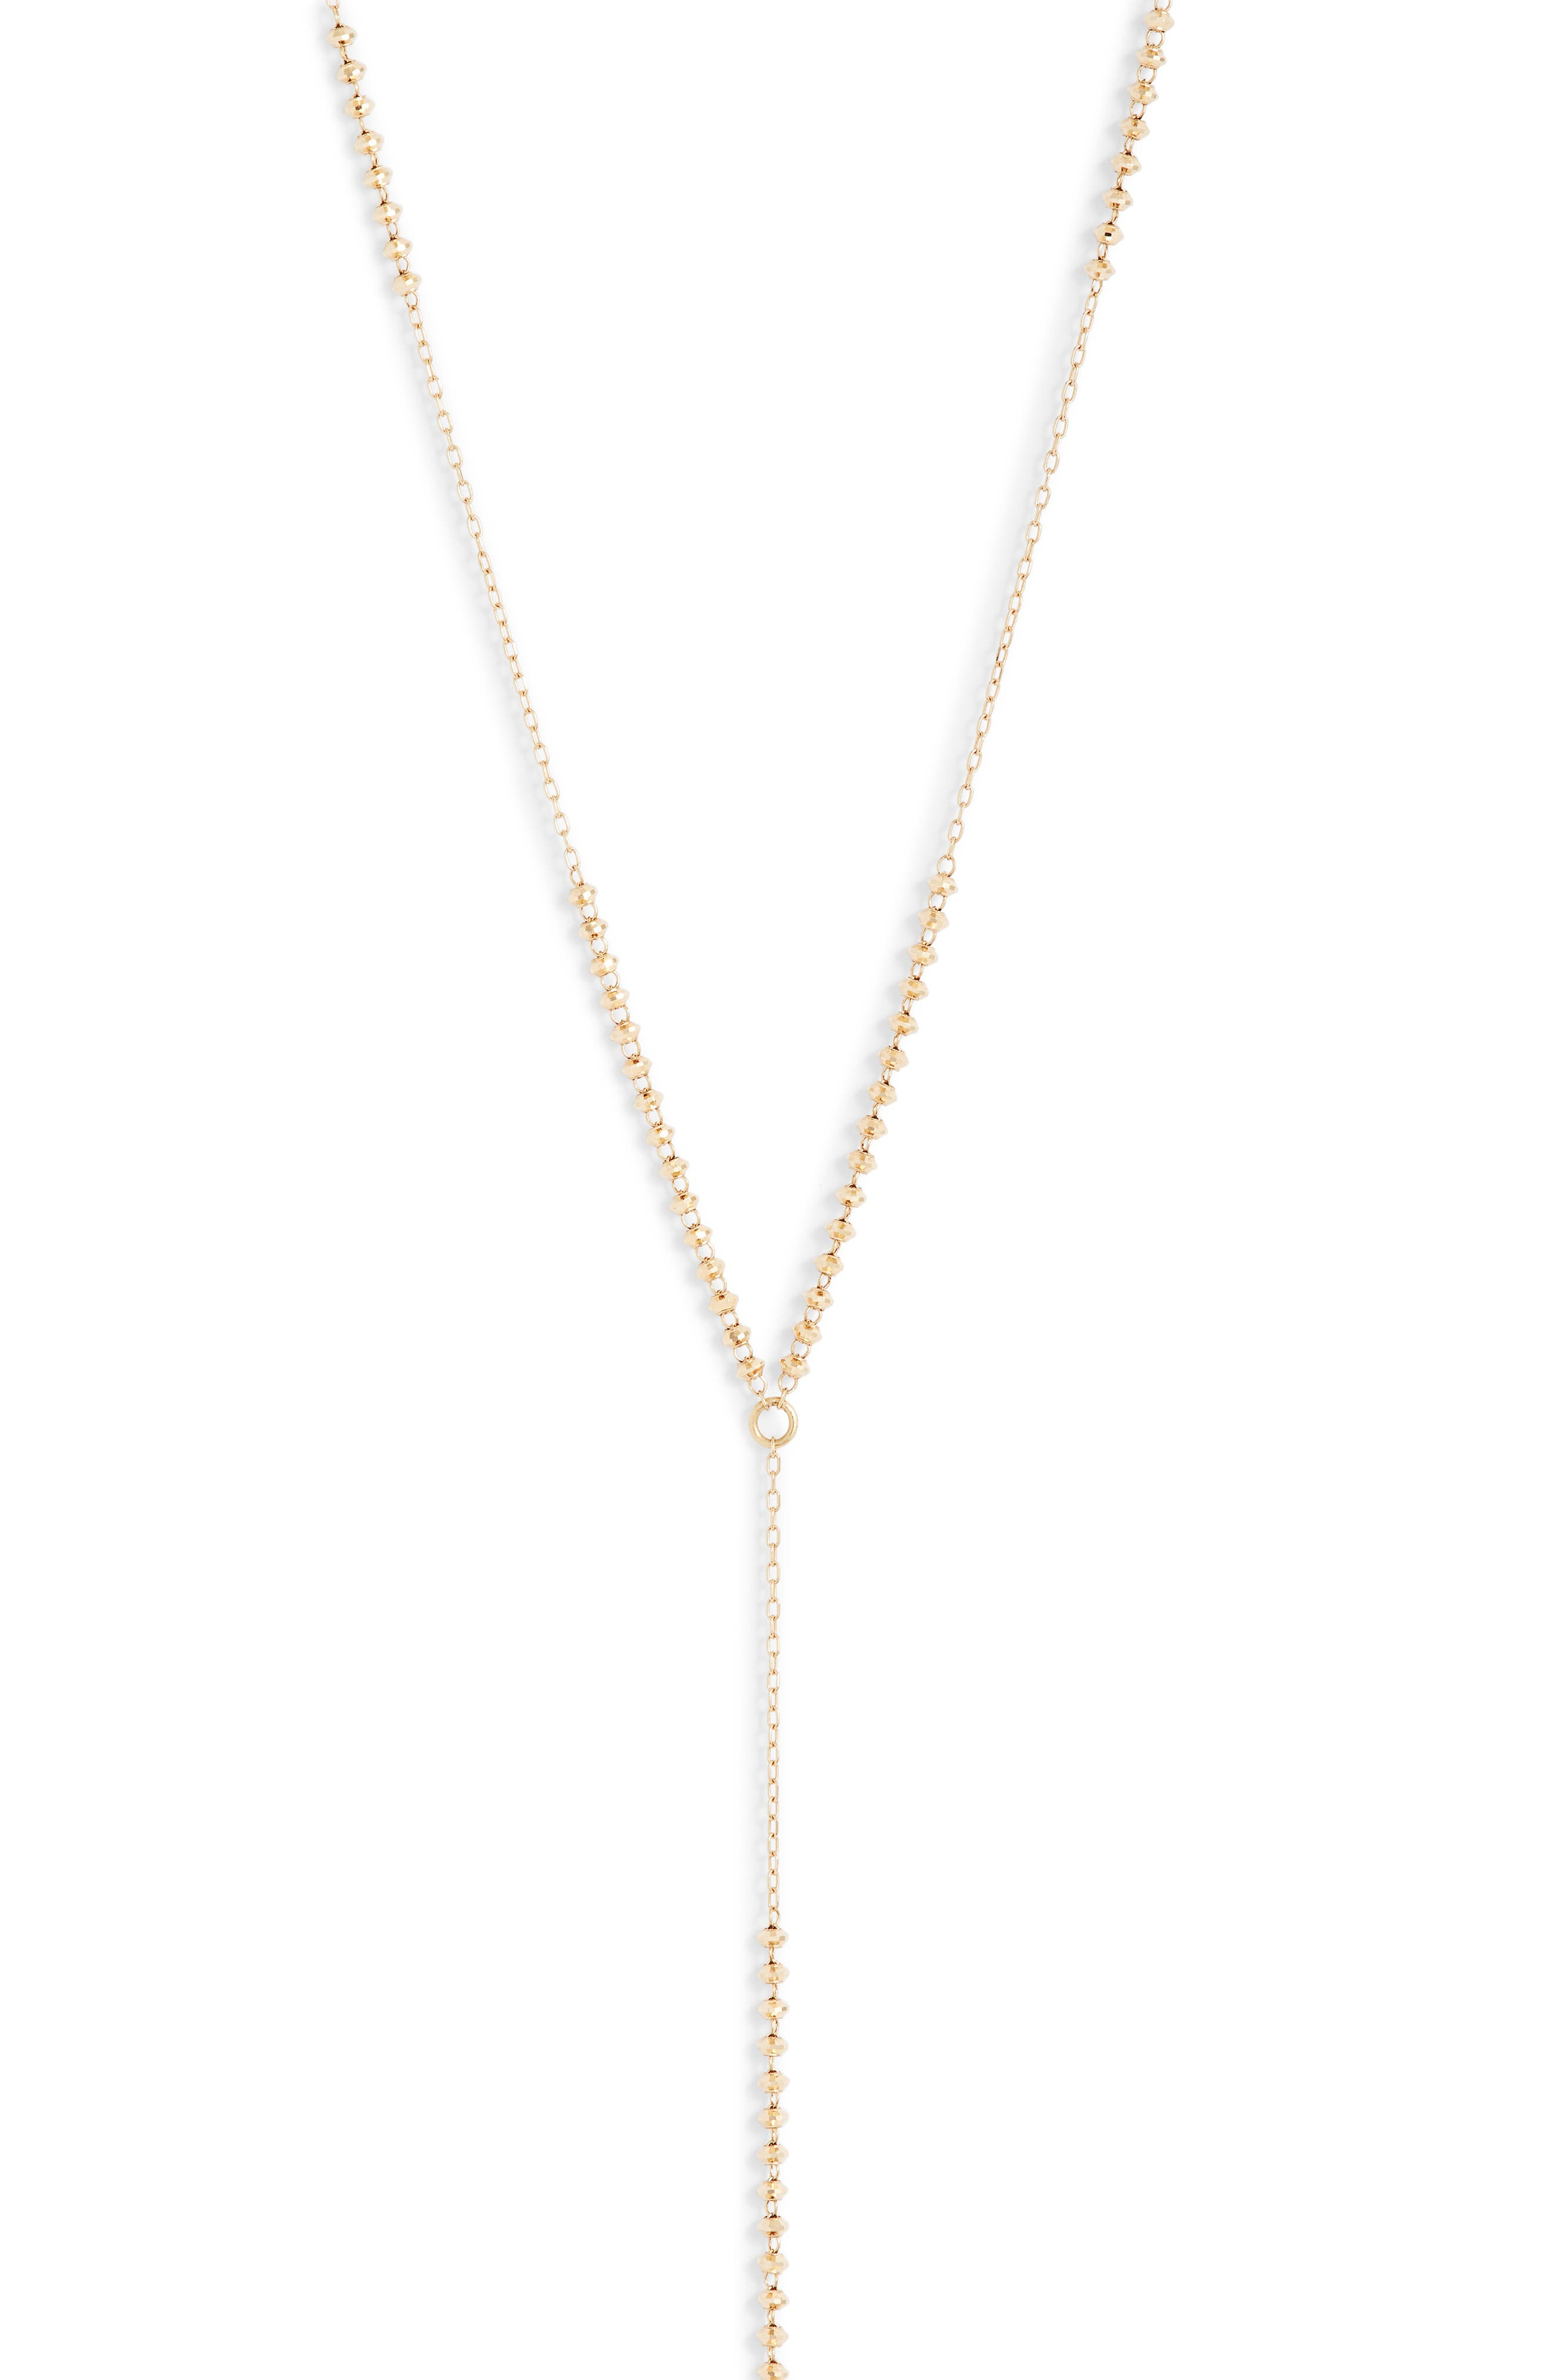 Shimmer Pearl Gold Y-Necklace,                             Alternate thumbnail 2, color,                             YELLOW GOLD